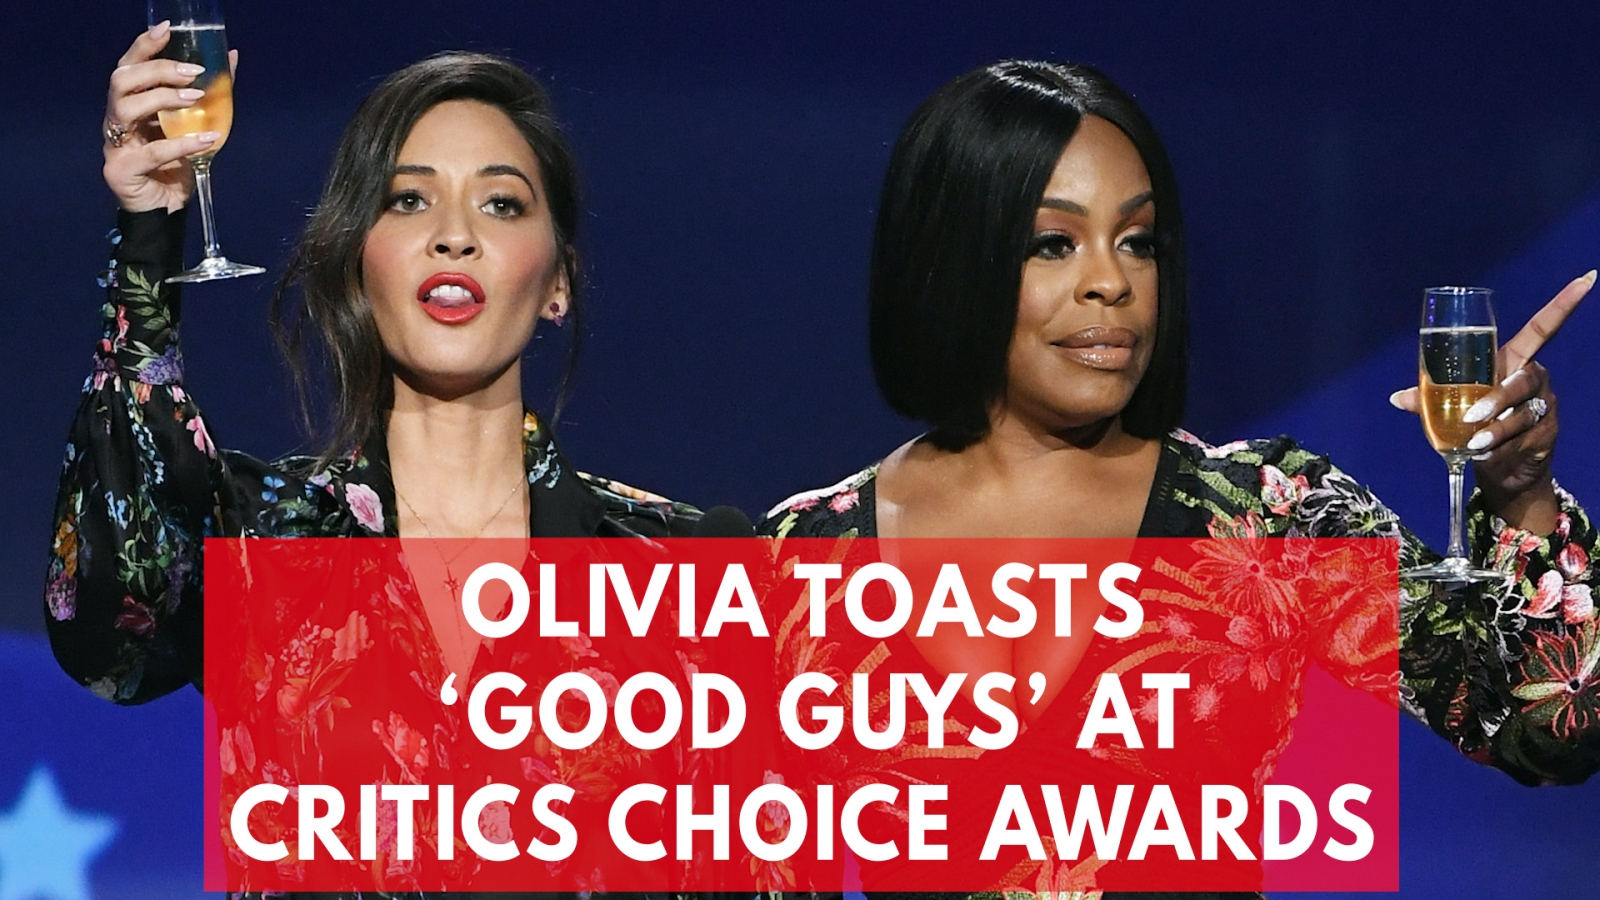 olivia-munn-and-niecy-nash-sarcastically-toasts-the-good-guys-at-critics-choice-awards